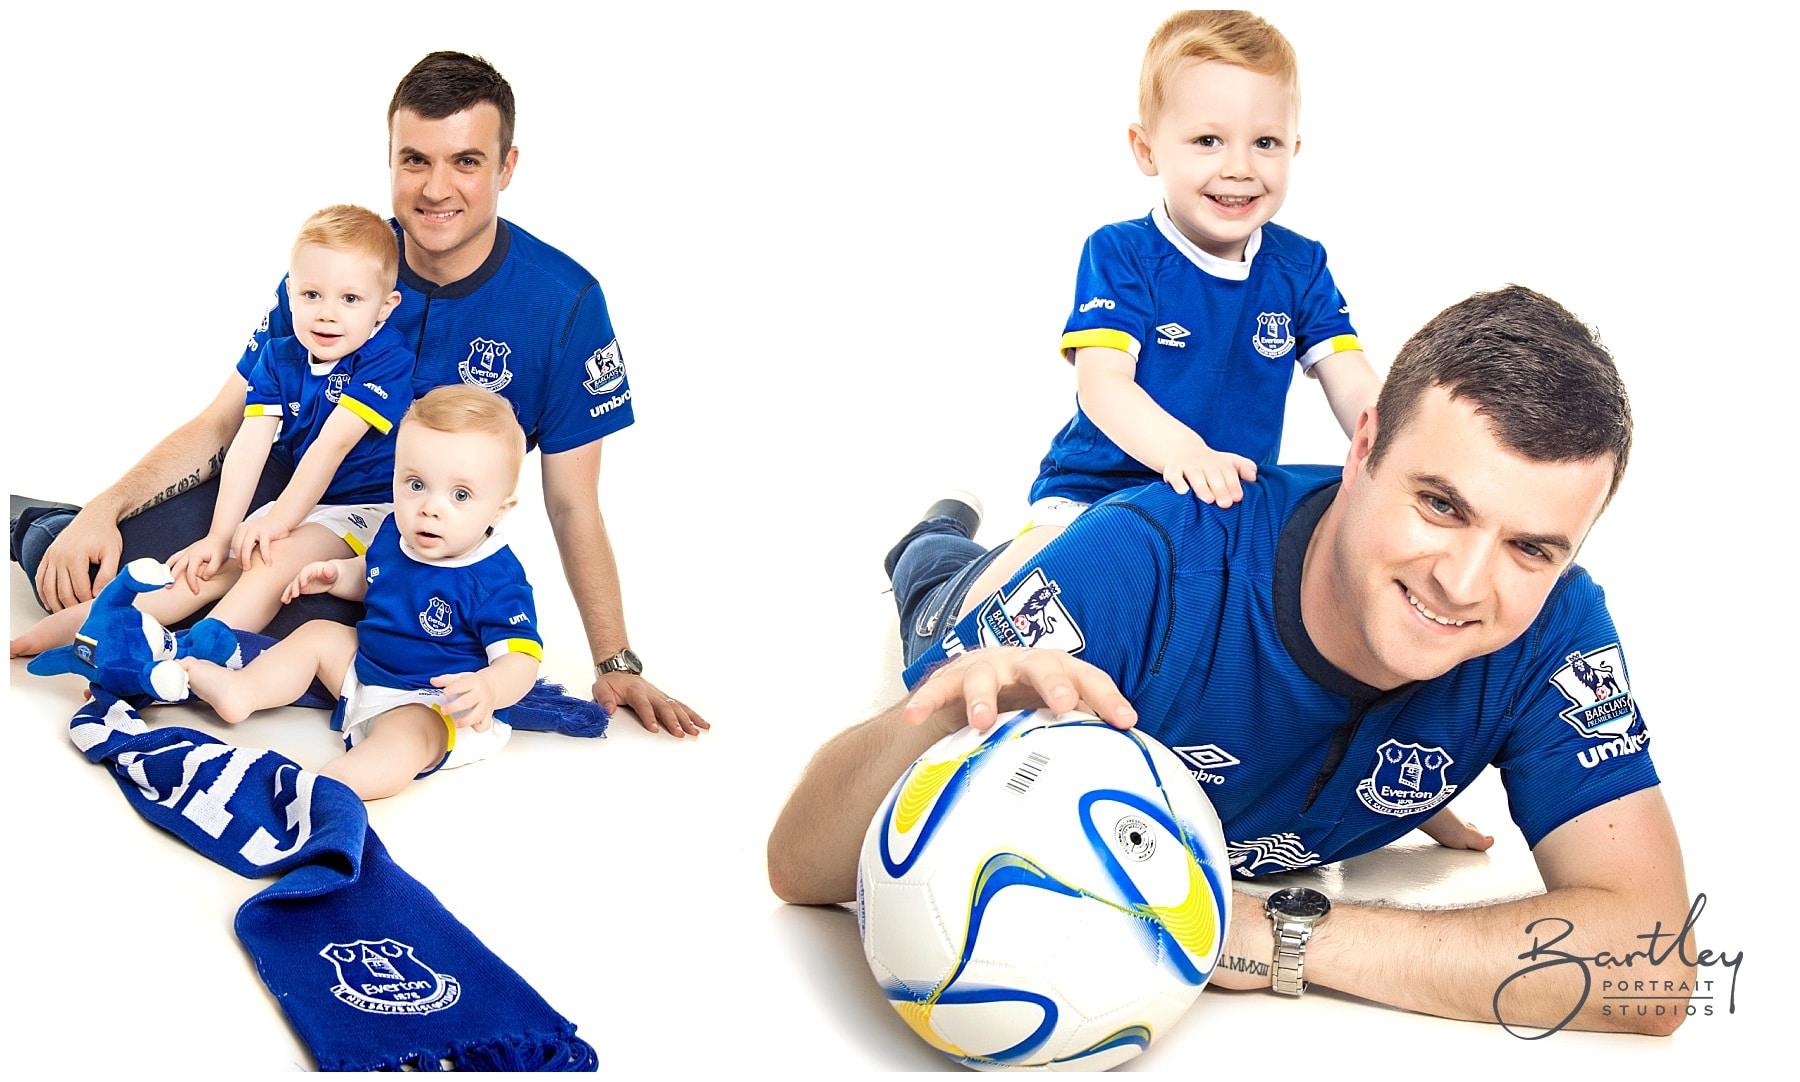 dad and sons in Everton football kit portrait